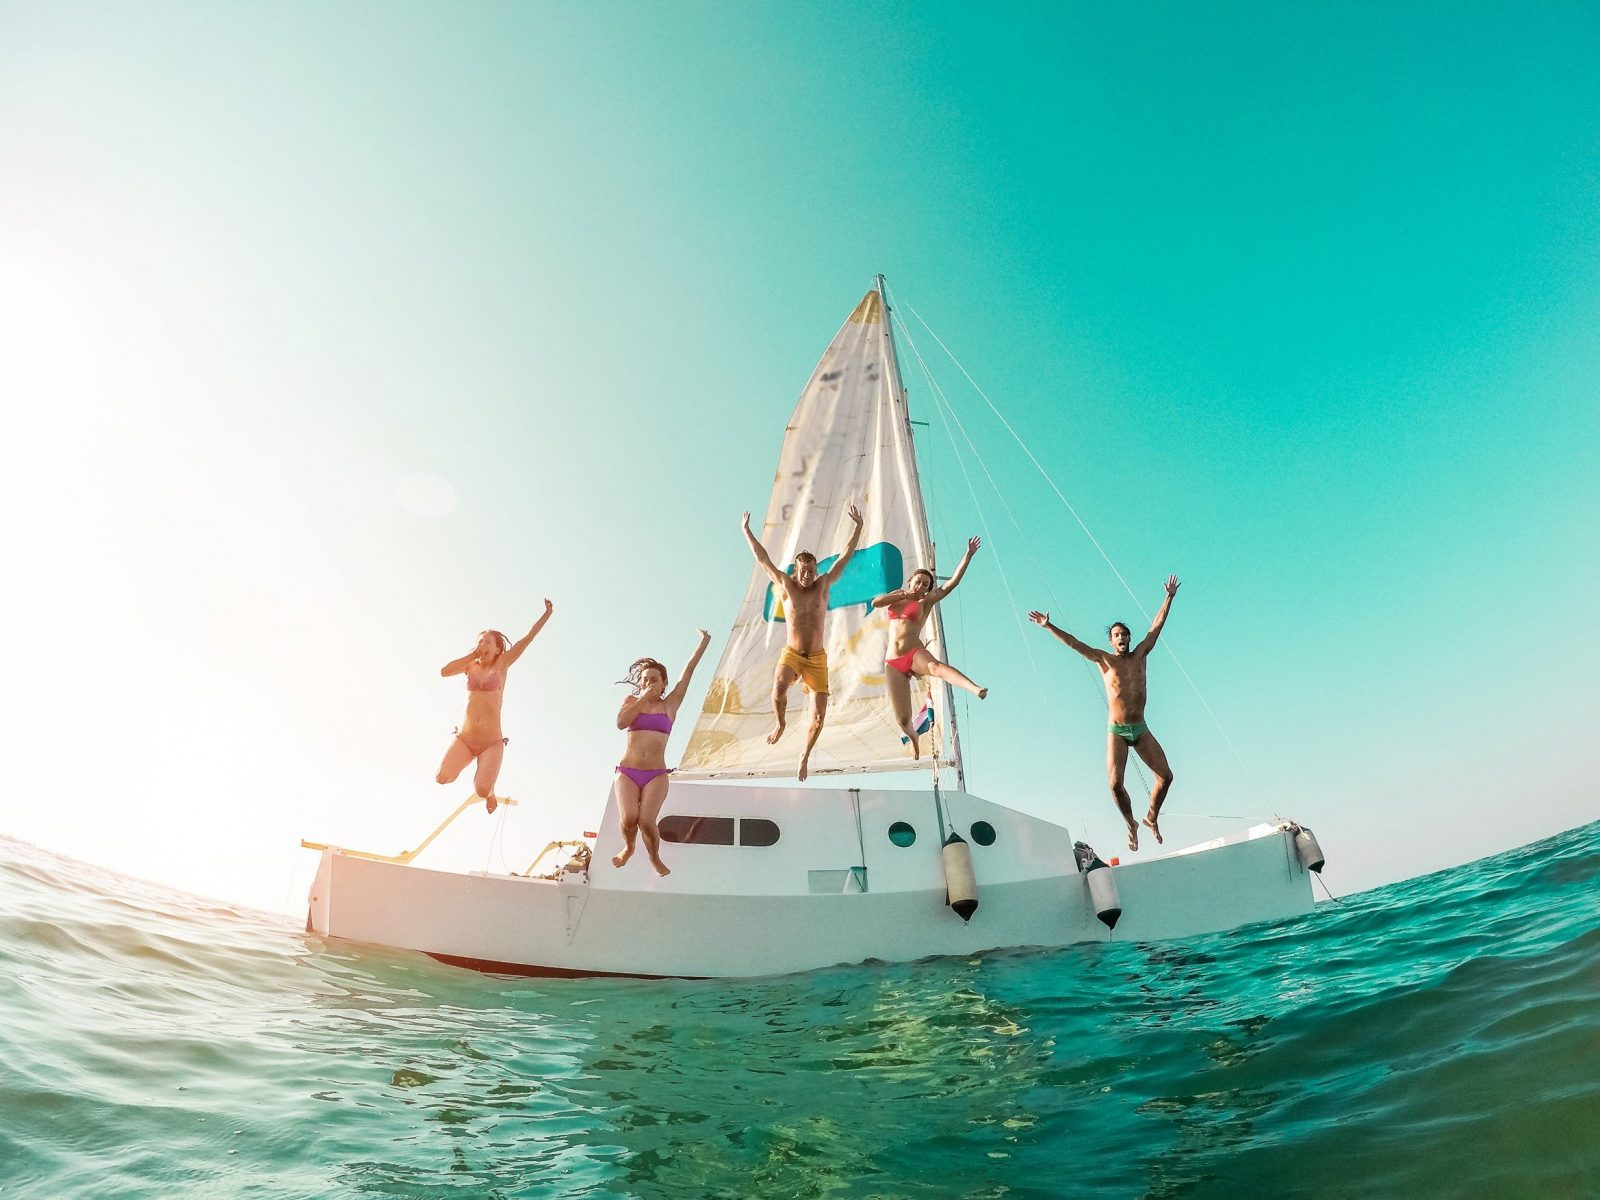 Group of friends sailing boat Fraser Island